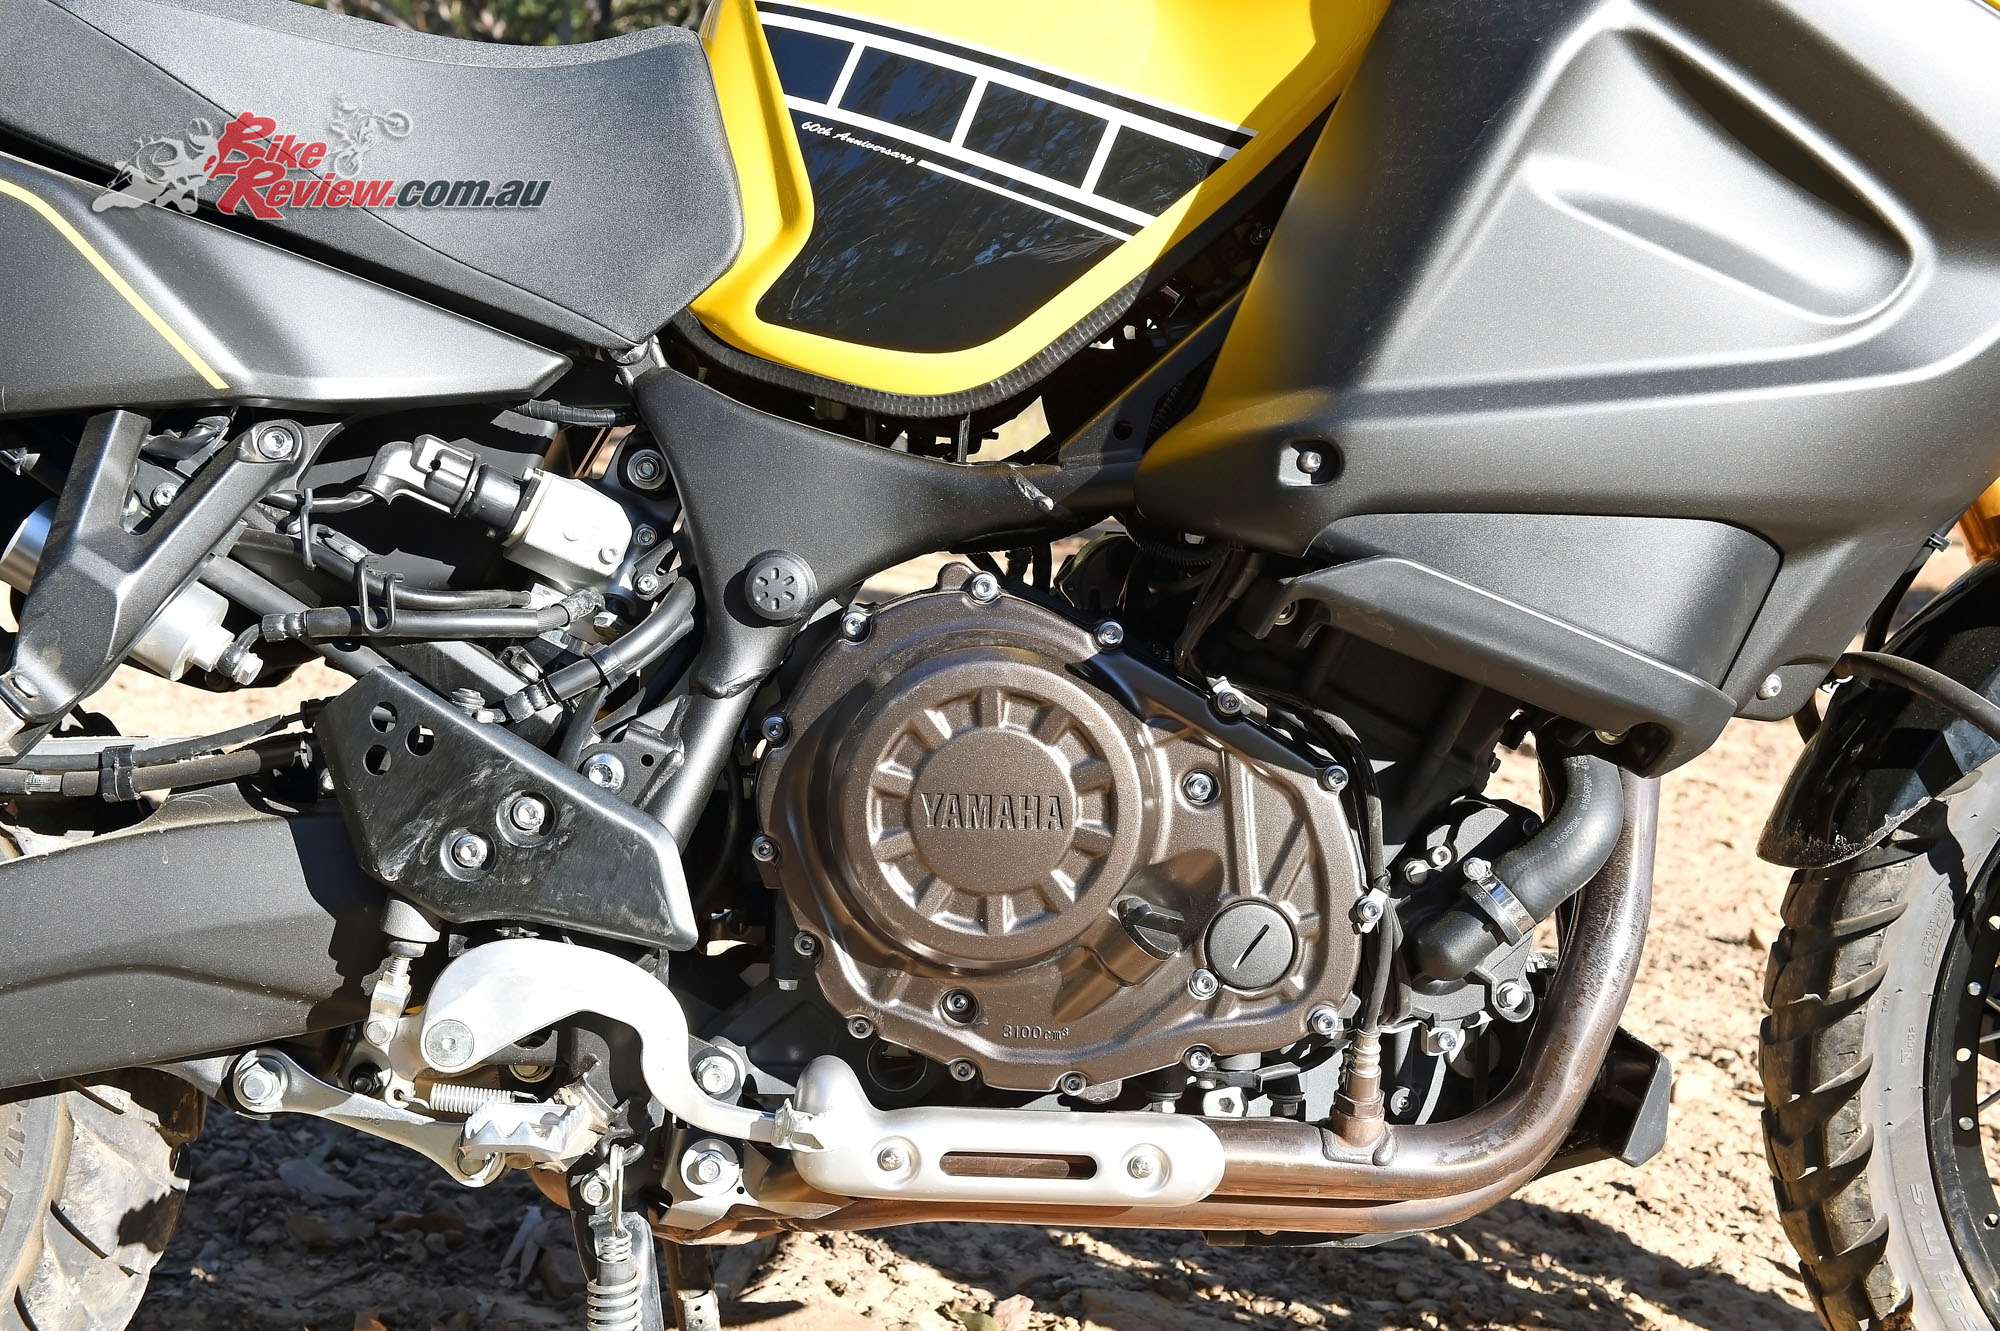 Review 2016 Yamaha Super Tenere Xt1200ze Bike Harley Heated Grips Wiring Diagram 2014 Details 3